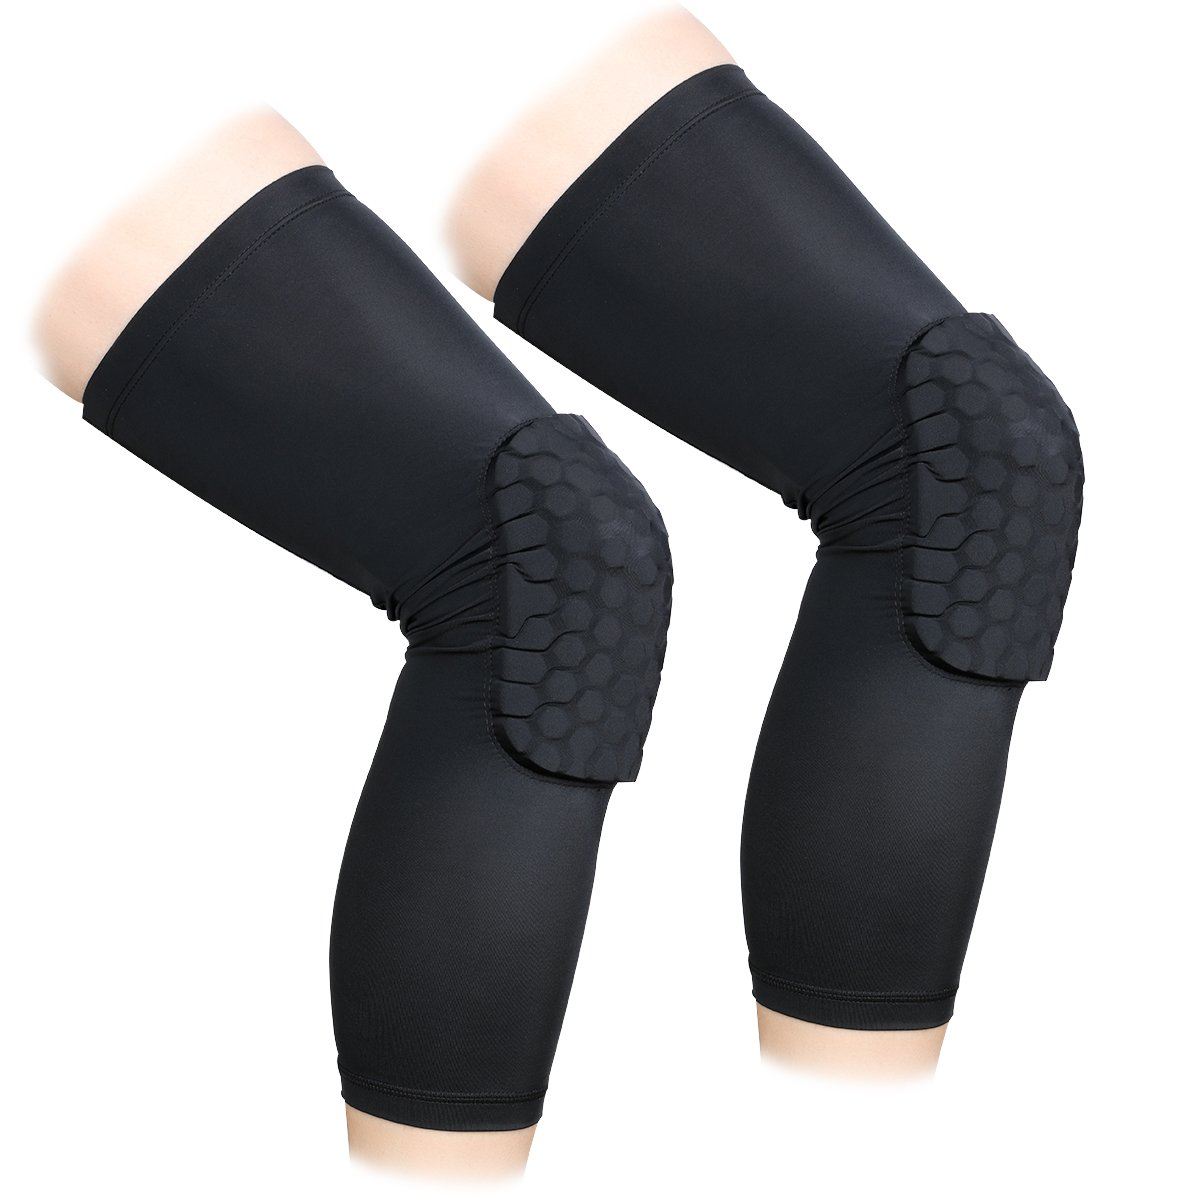 V/êtements de compression de protection 1 paire Hommes et femmes Support de basket-ball Contact Sports ANZOME 2 Packs Best to Immobilized Football Strap /& Wrap Knee for Volleyball